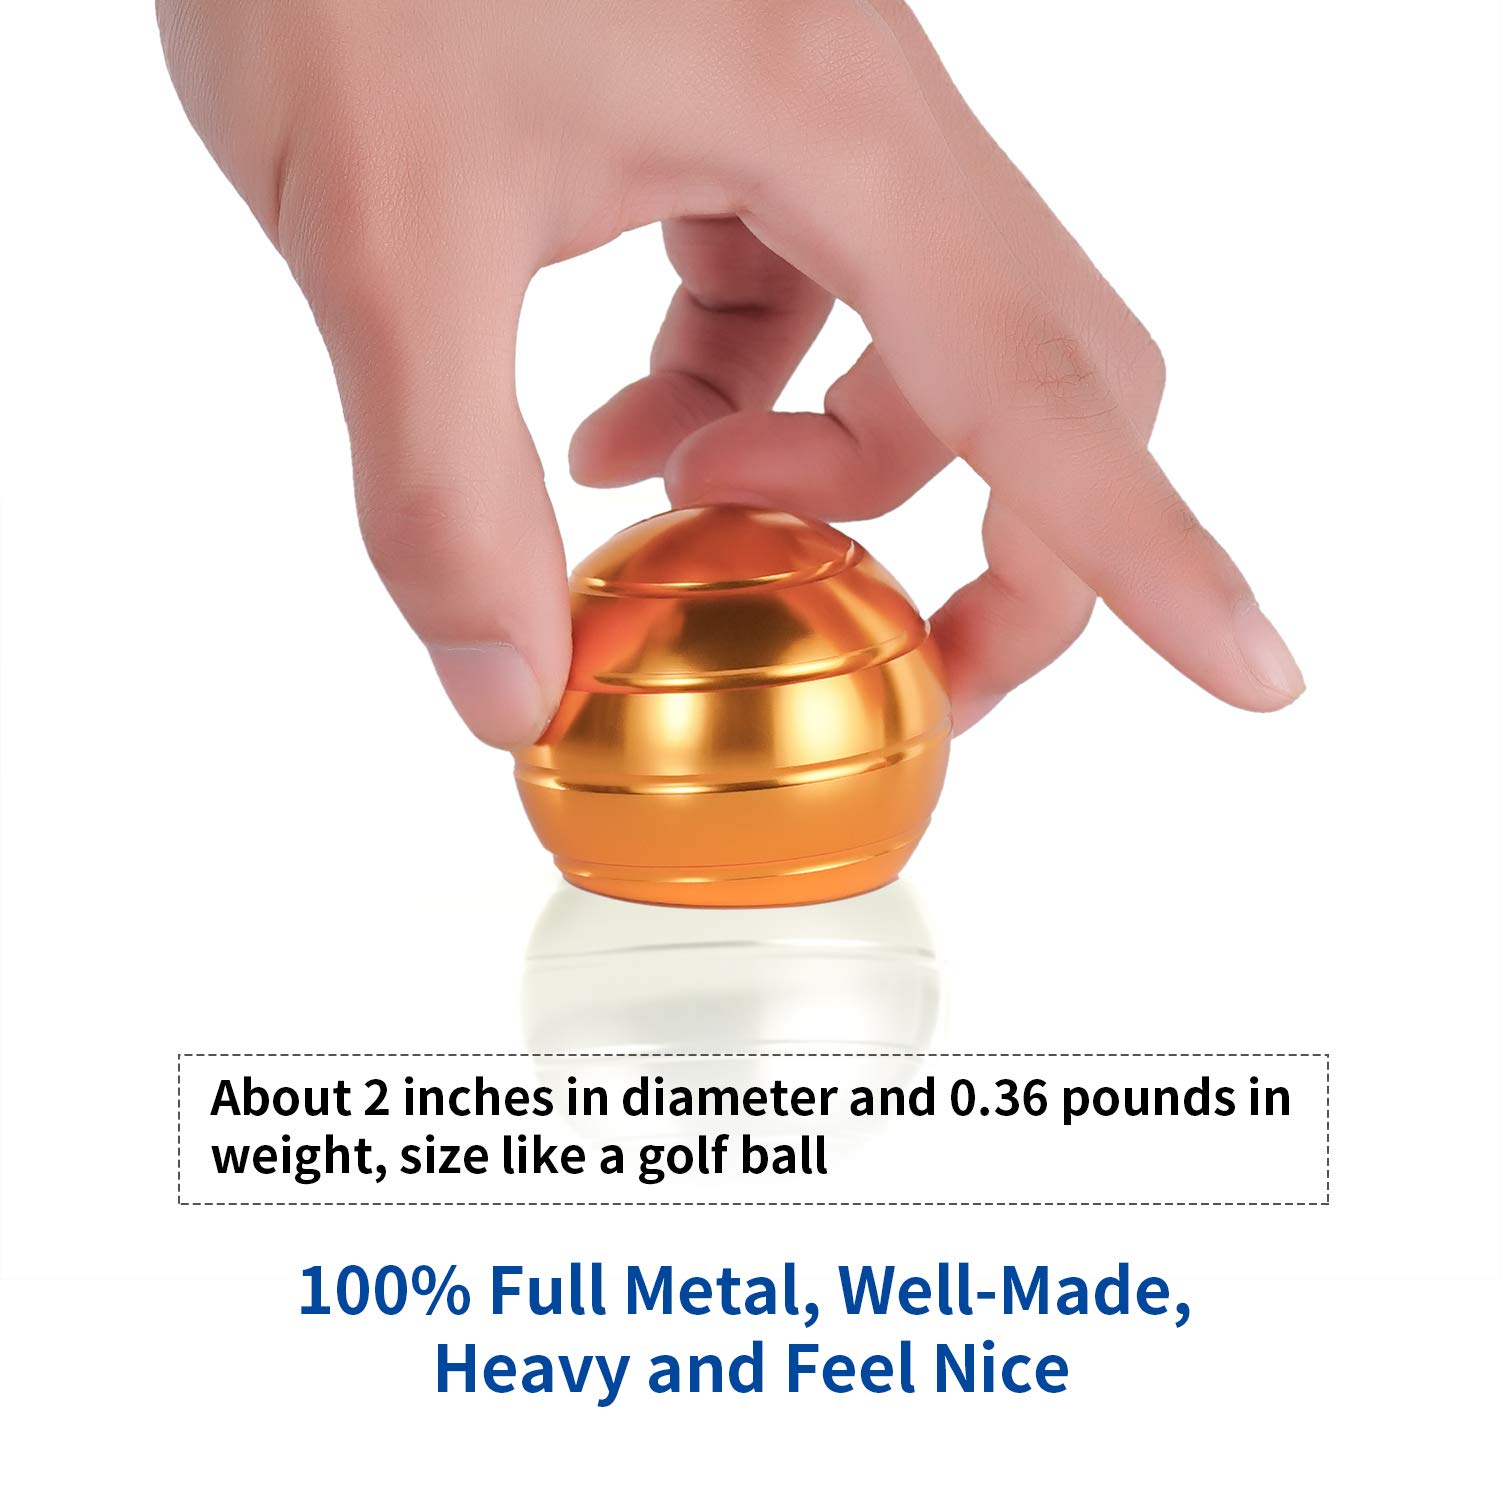 Desk Fidget Toys Safe for Adults & Kids New Version Metal Stress Reliever Kinetic Spinning Ball Unique Physics Art Gadget for Office & Home Anti Anxiety ADHD Relief Autism Relief Relaxation  (Gold) by SIWAN-TOY (Image #5)